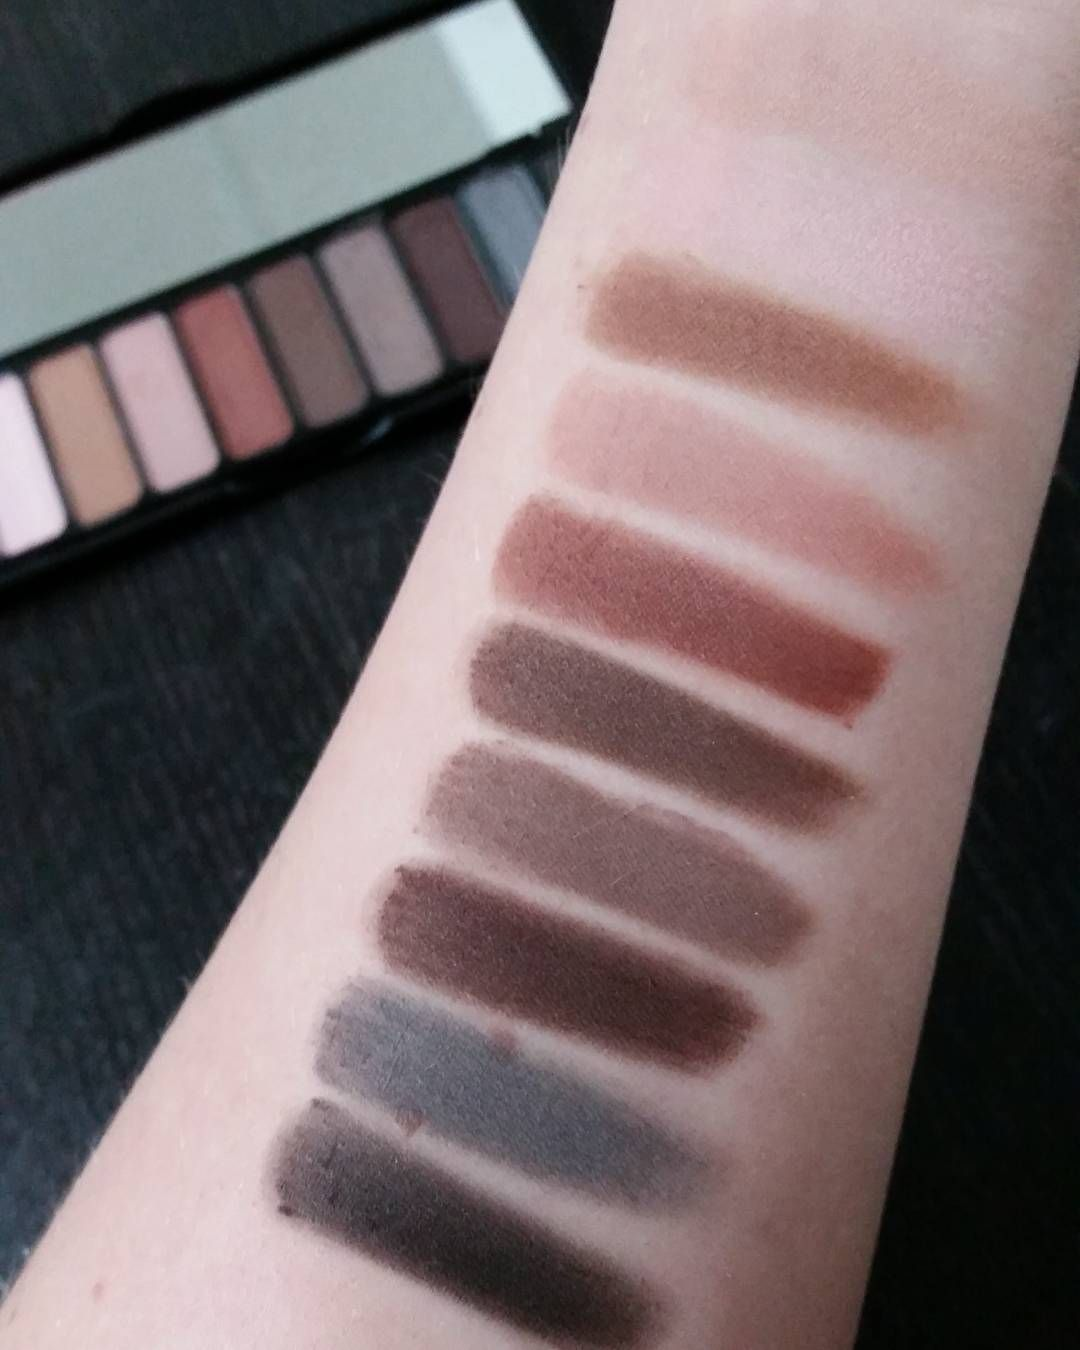 Swatches of the ELF cosmetics Mad for Matte eyeshadow palette! 10 all matte shades with perfect colors for fall and winter